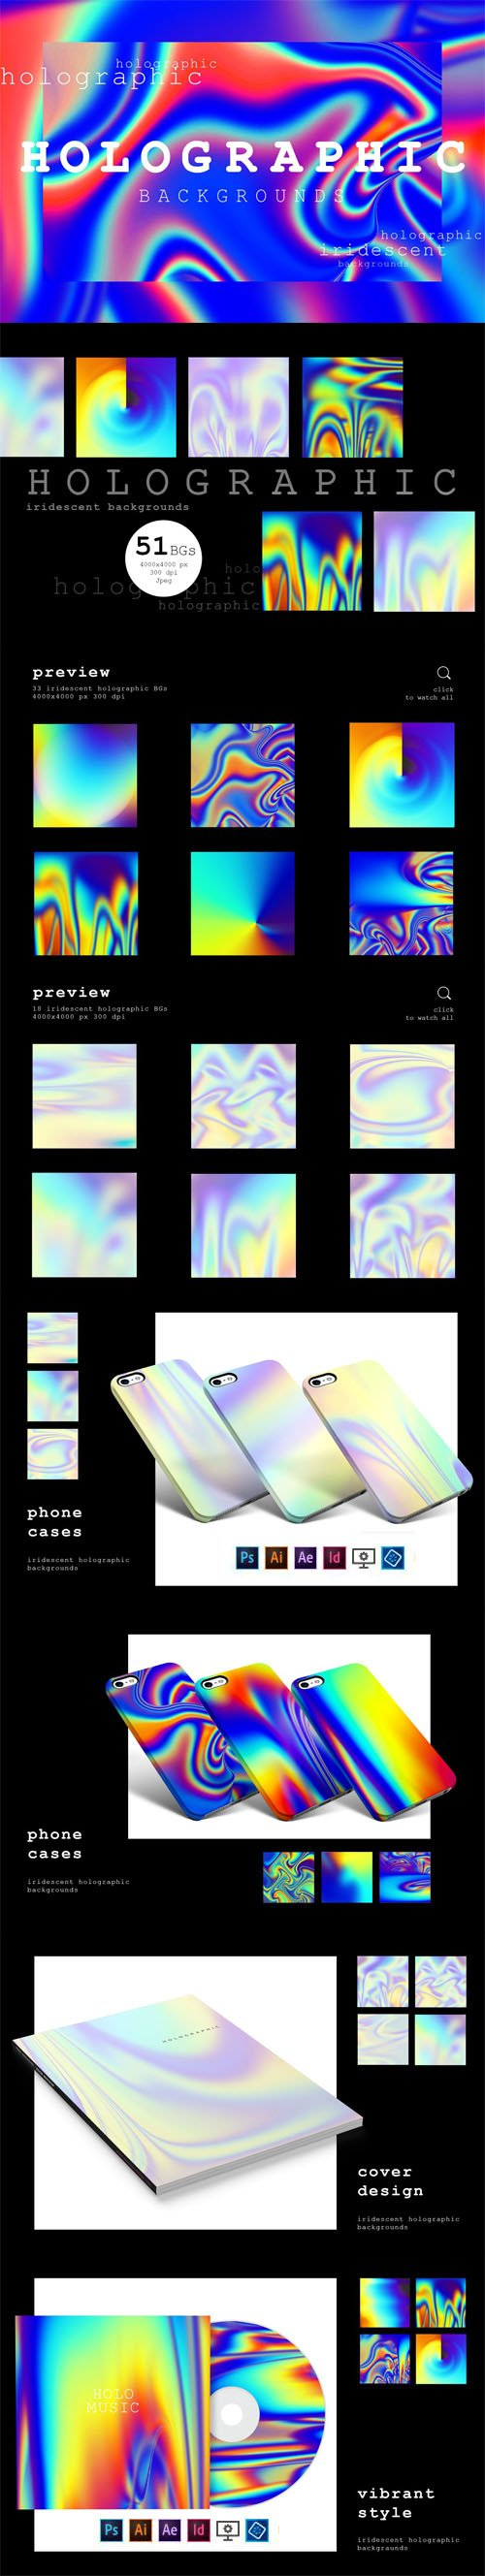 CM - 51 Holographic & Bright Iridescent Backgrounds